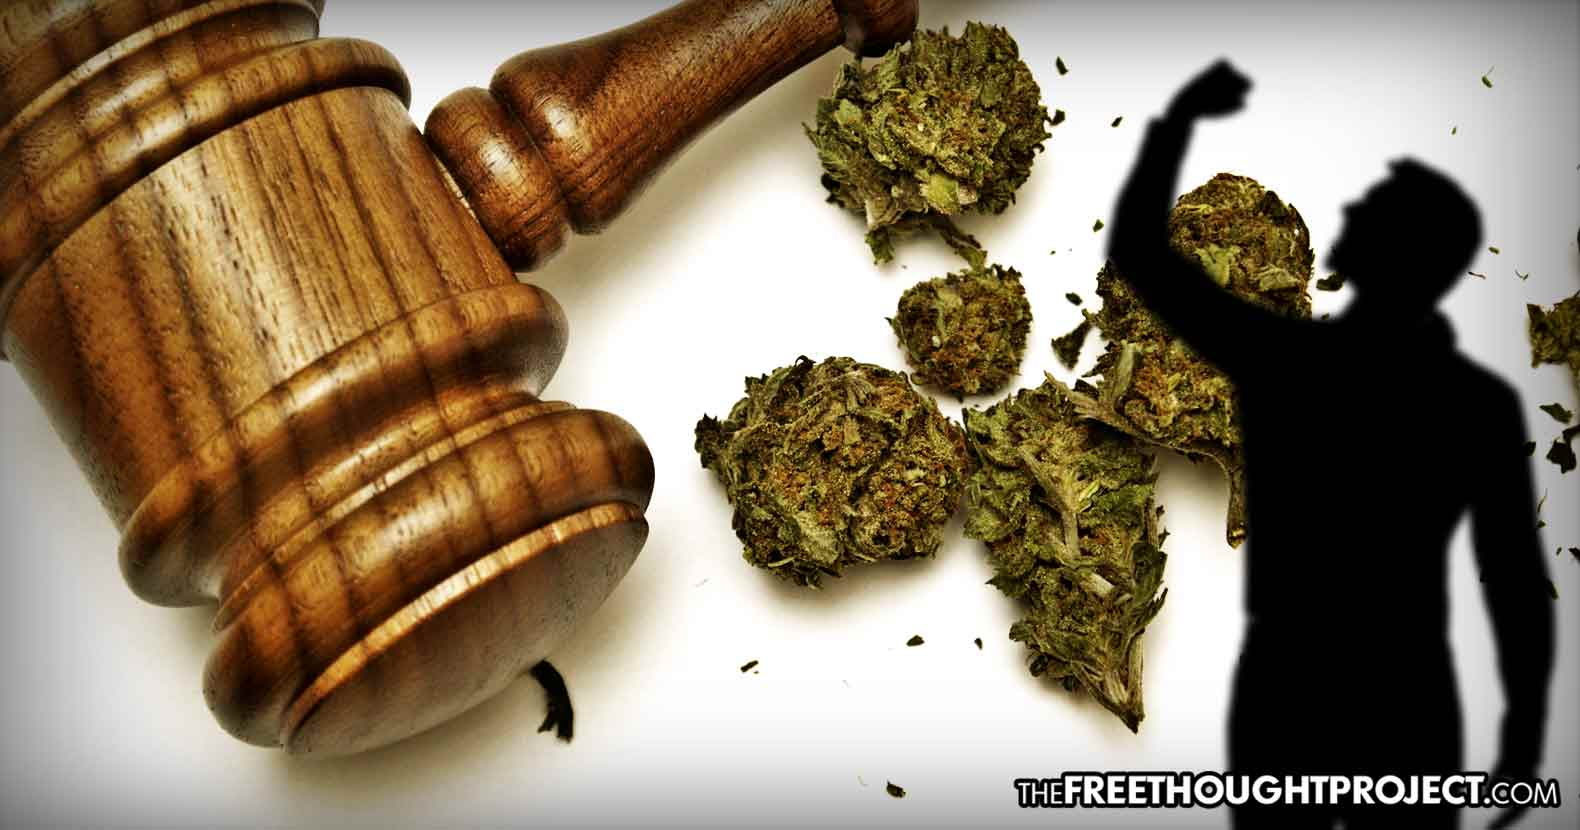 After Legalizing Cannabis, Arizona Begins Dismissing Weed Charges Immediately